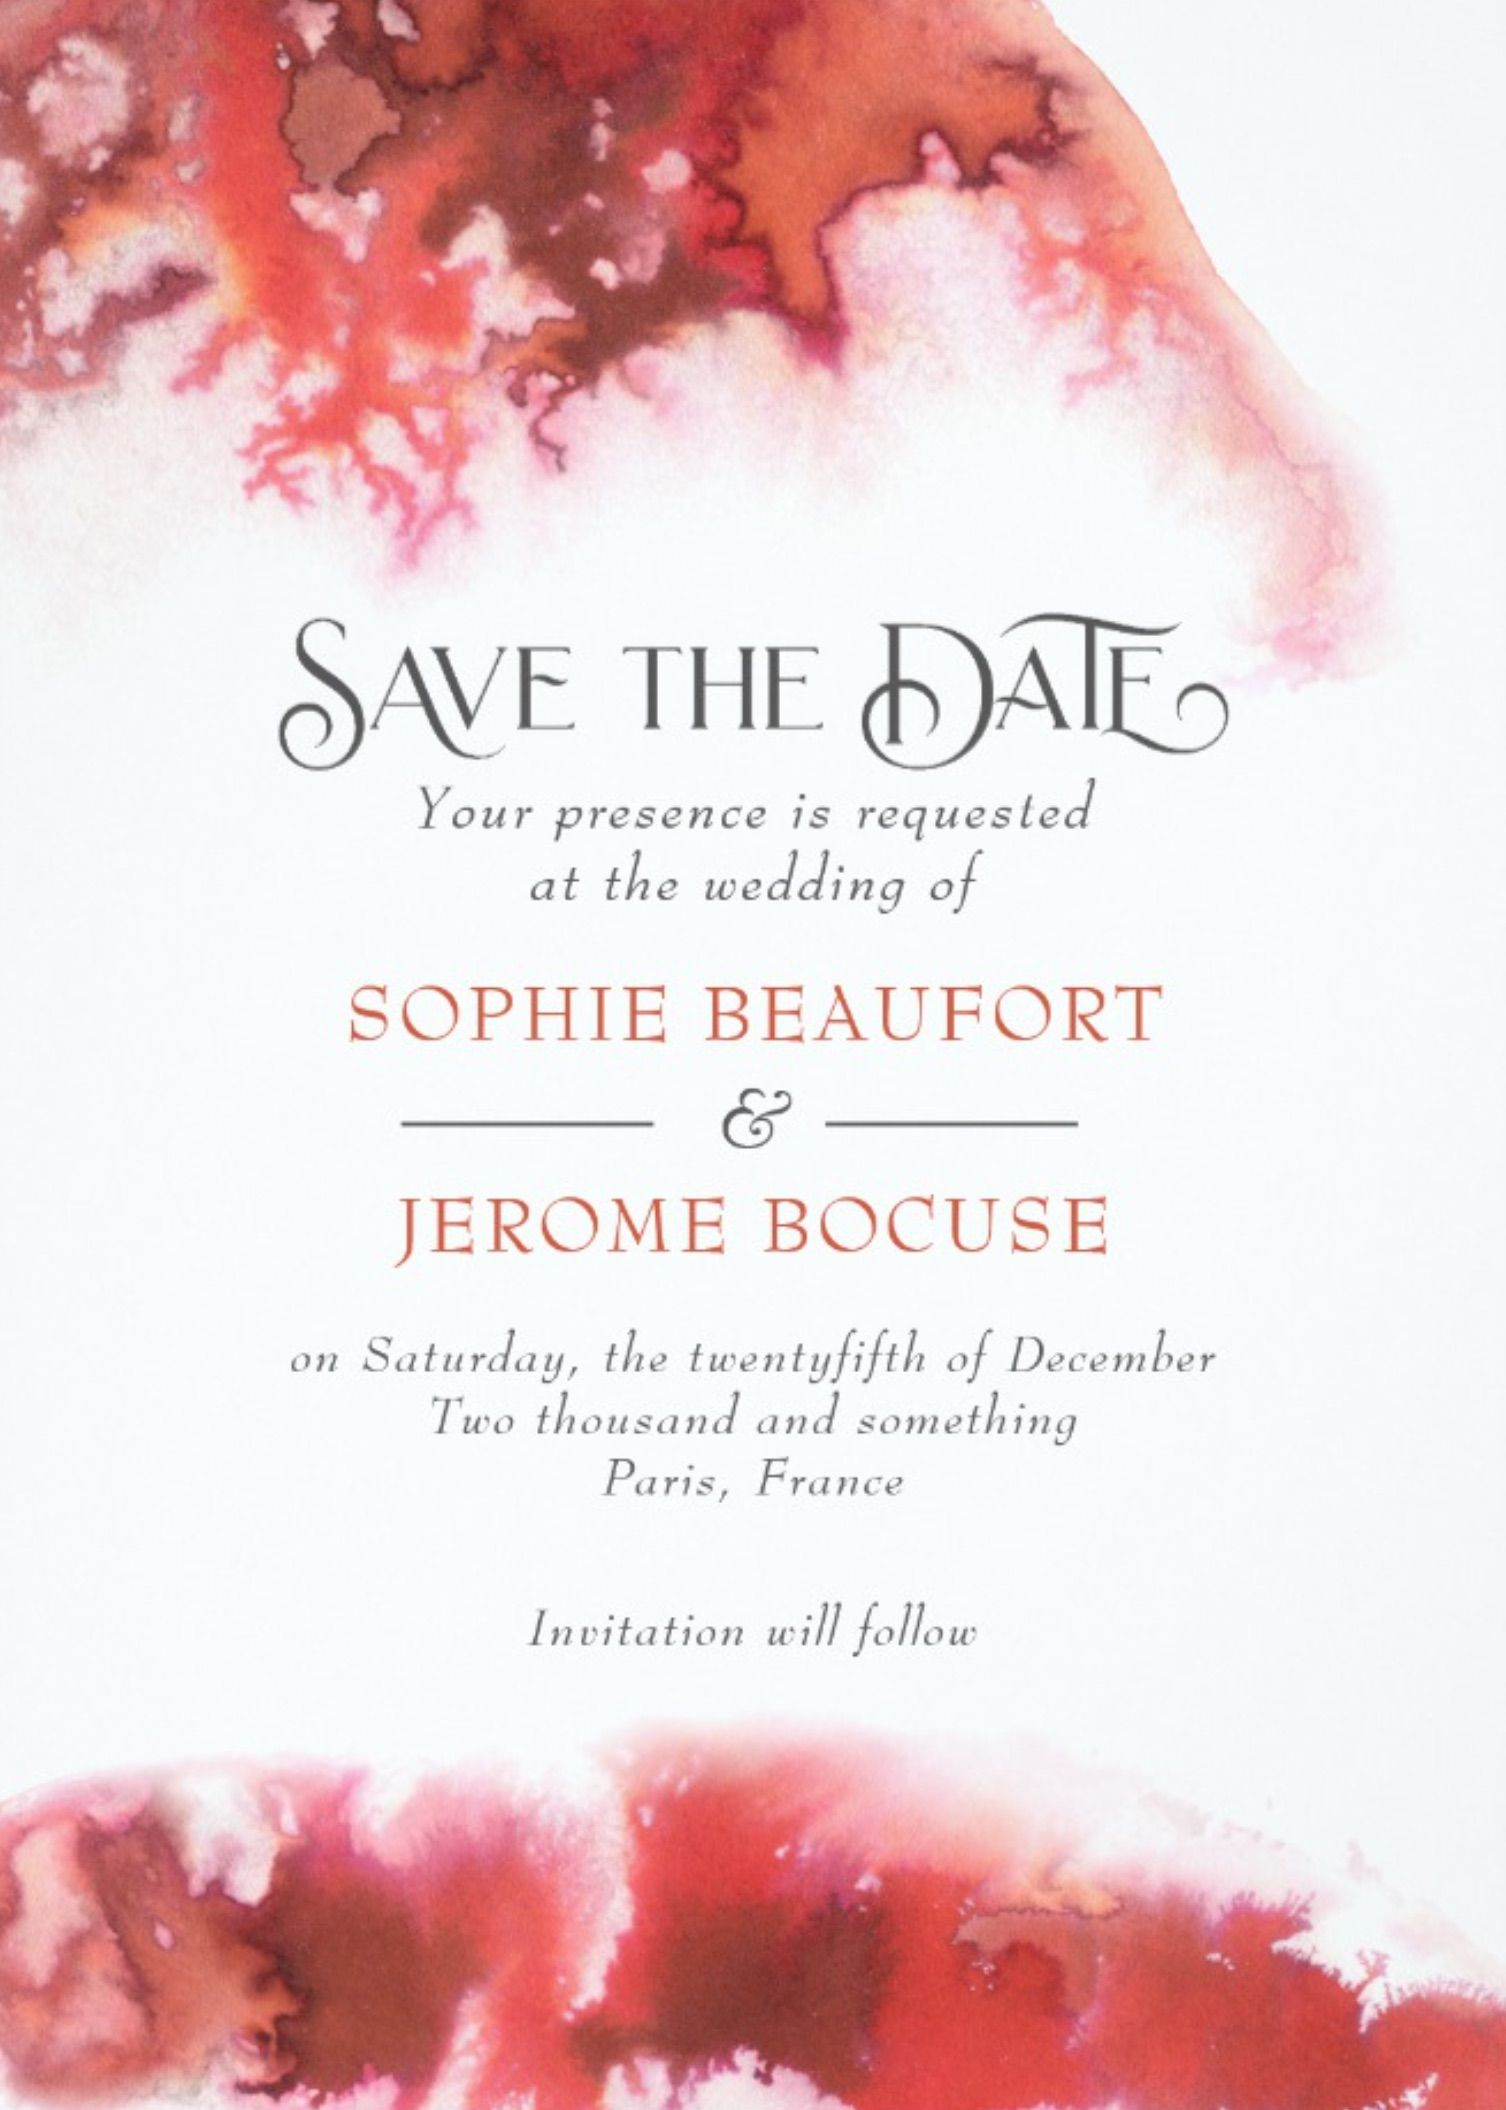 Save the Date Red Watercolor Passion Wedding | Modern wedding theme ...